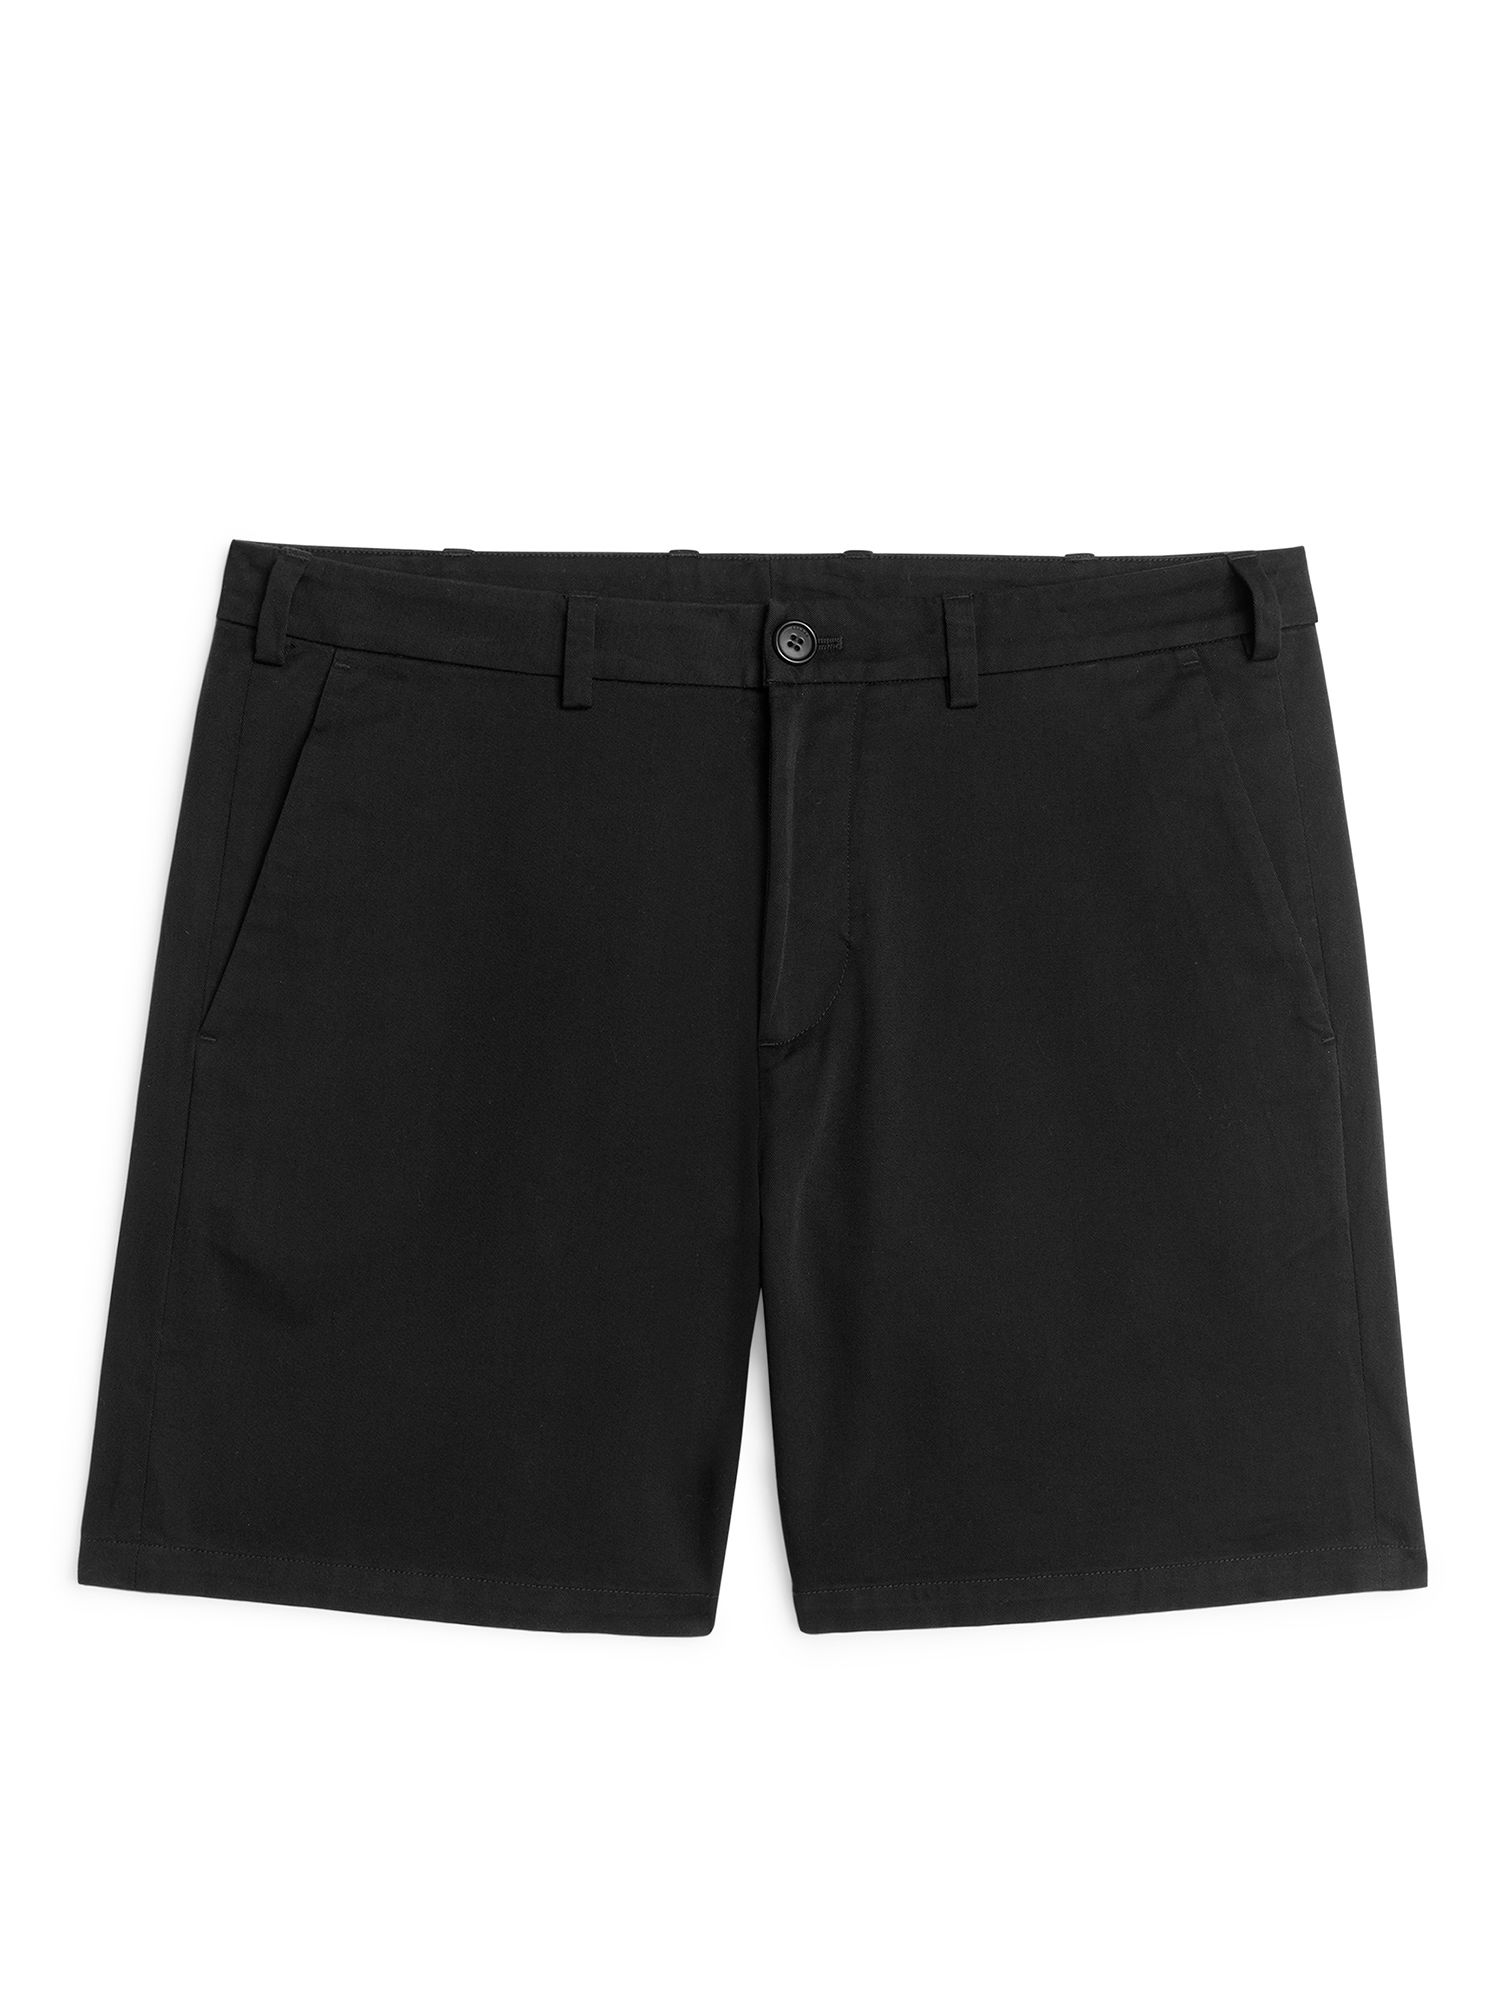 Fabric Swatch image of Arket organic cotton chino shorts in black